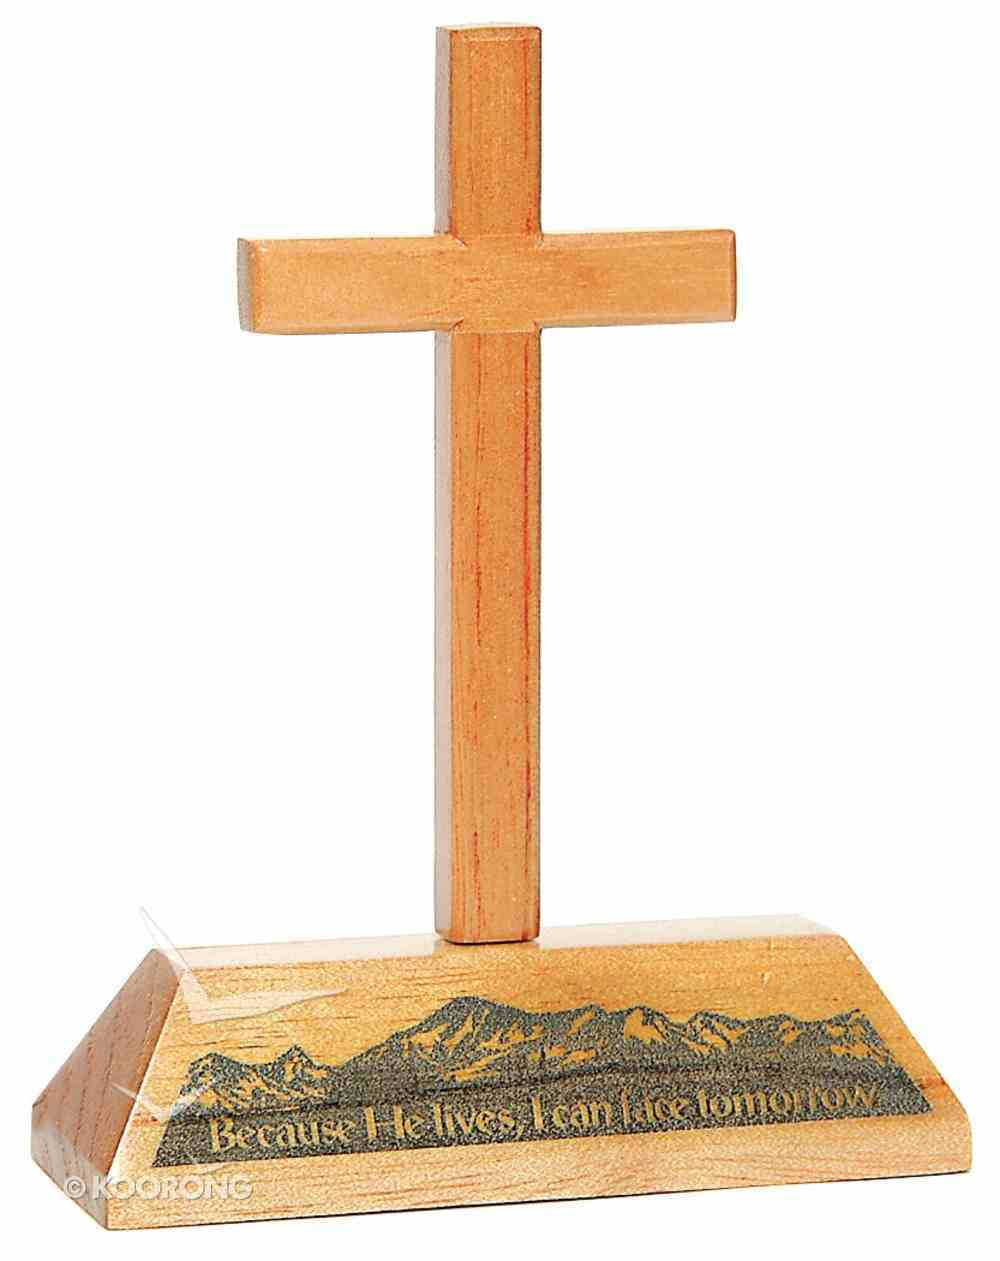 Cross on Stand: Because He Lives, I Can Have Tomorrow Homeware